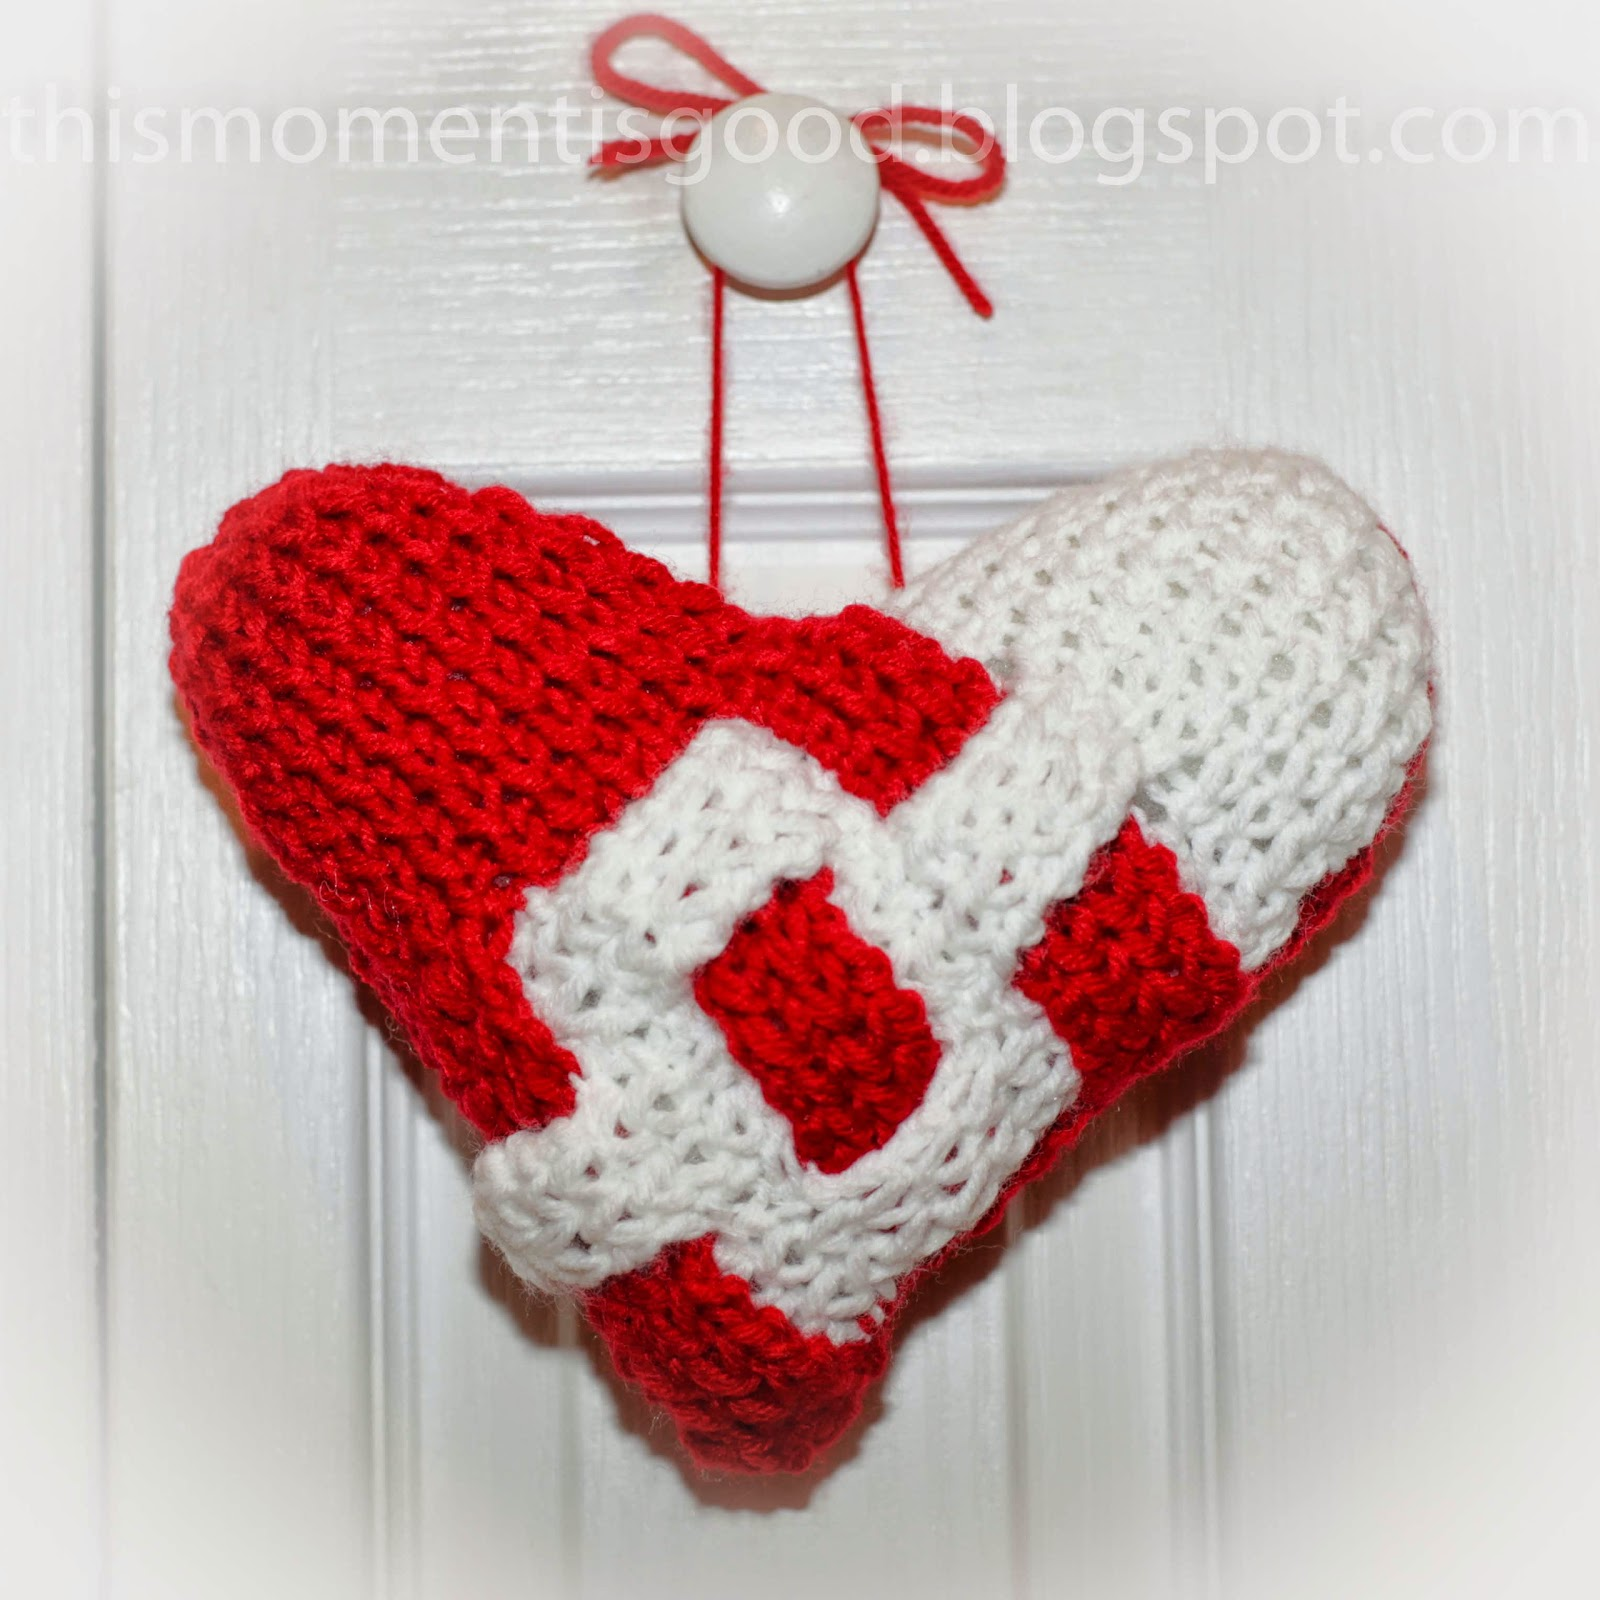 Loom Knitting by This Moment is Good!: LOOM KNIT HEART PILLOW PATTERN...